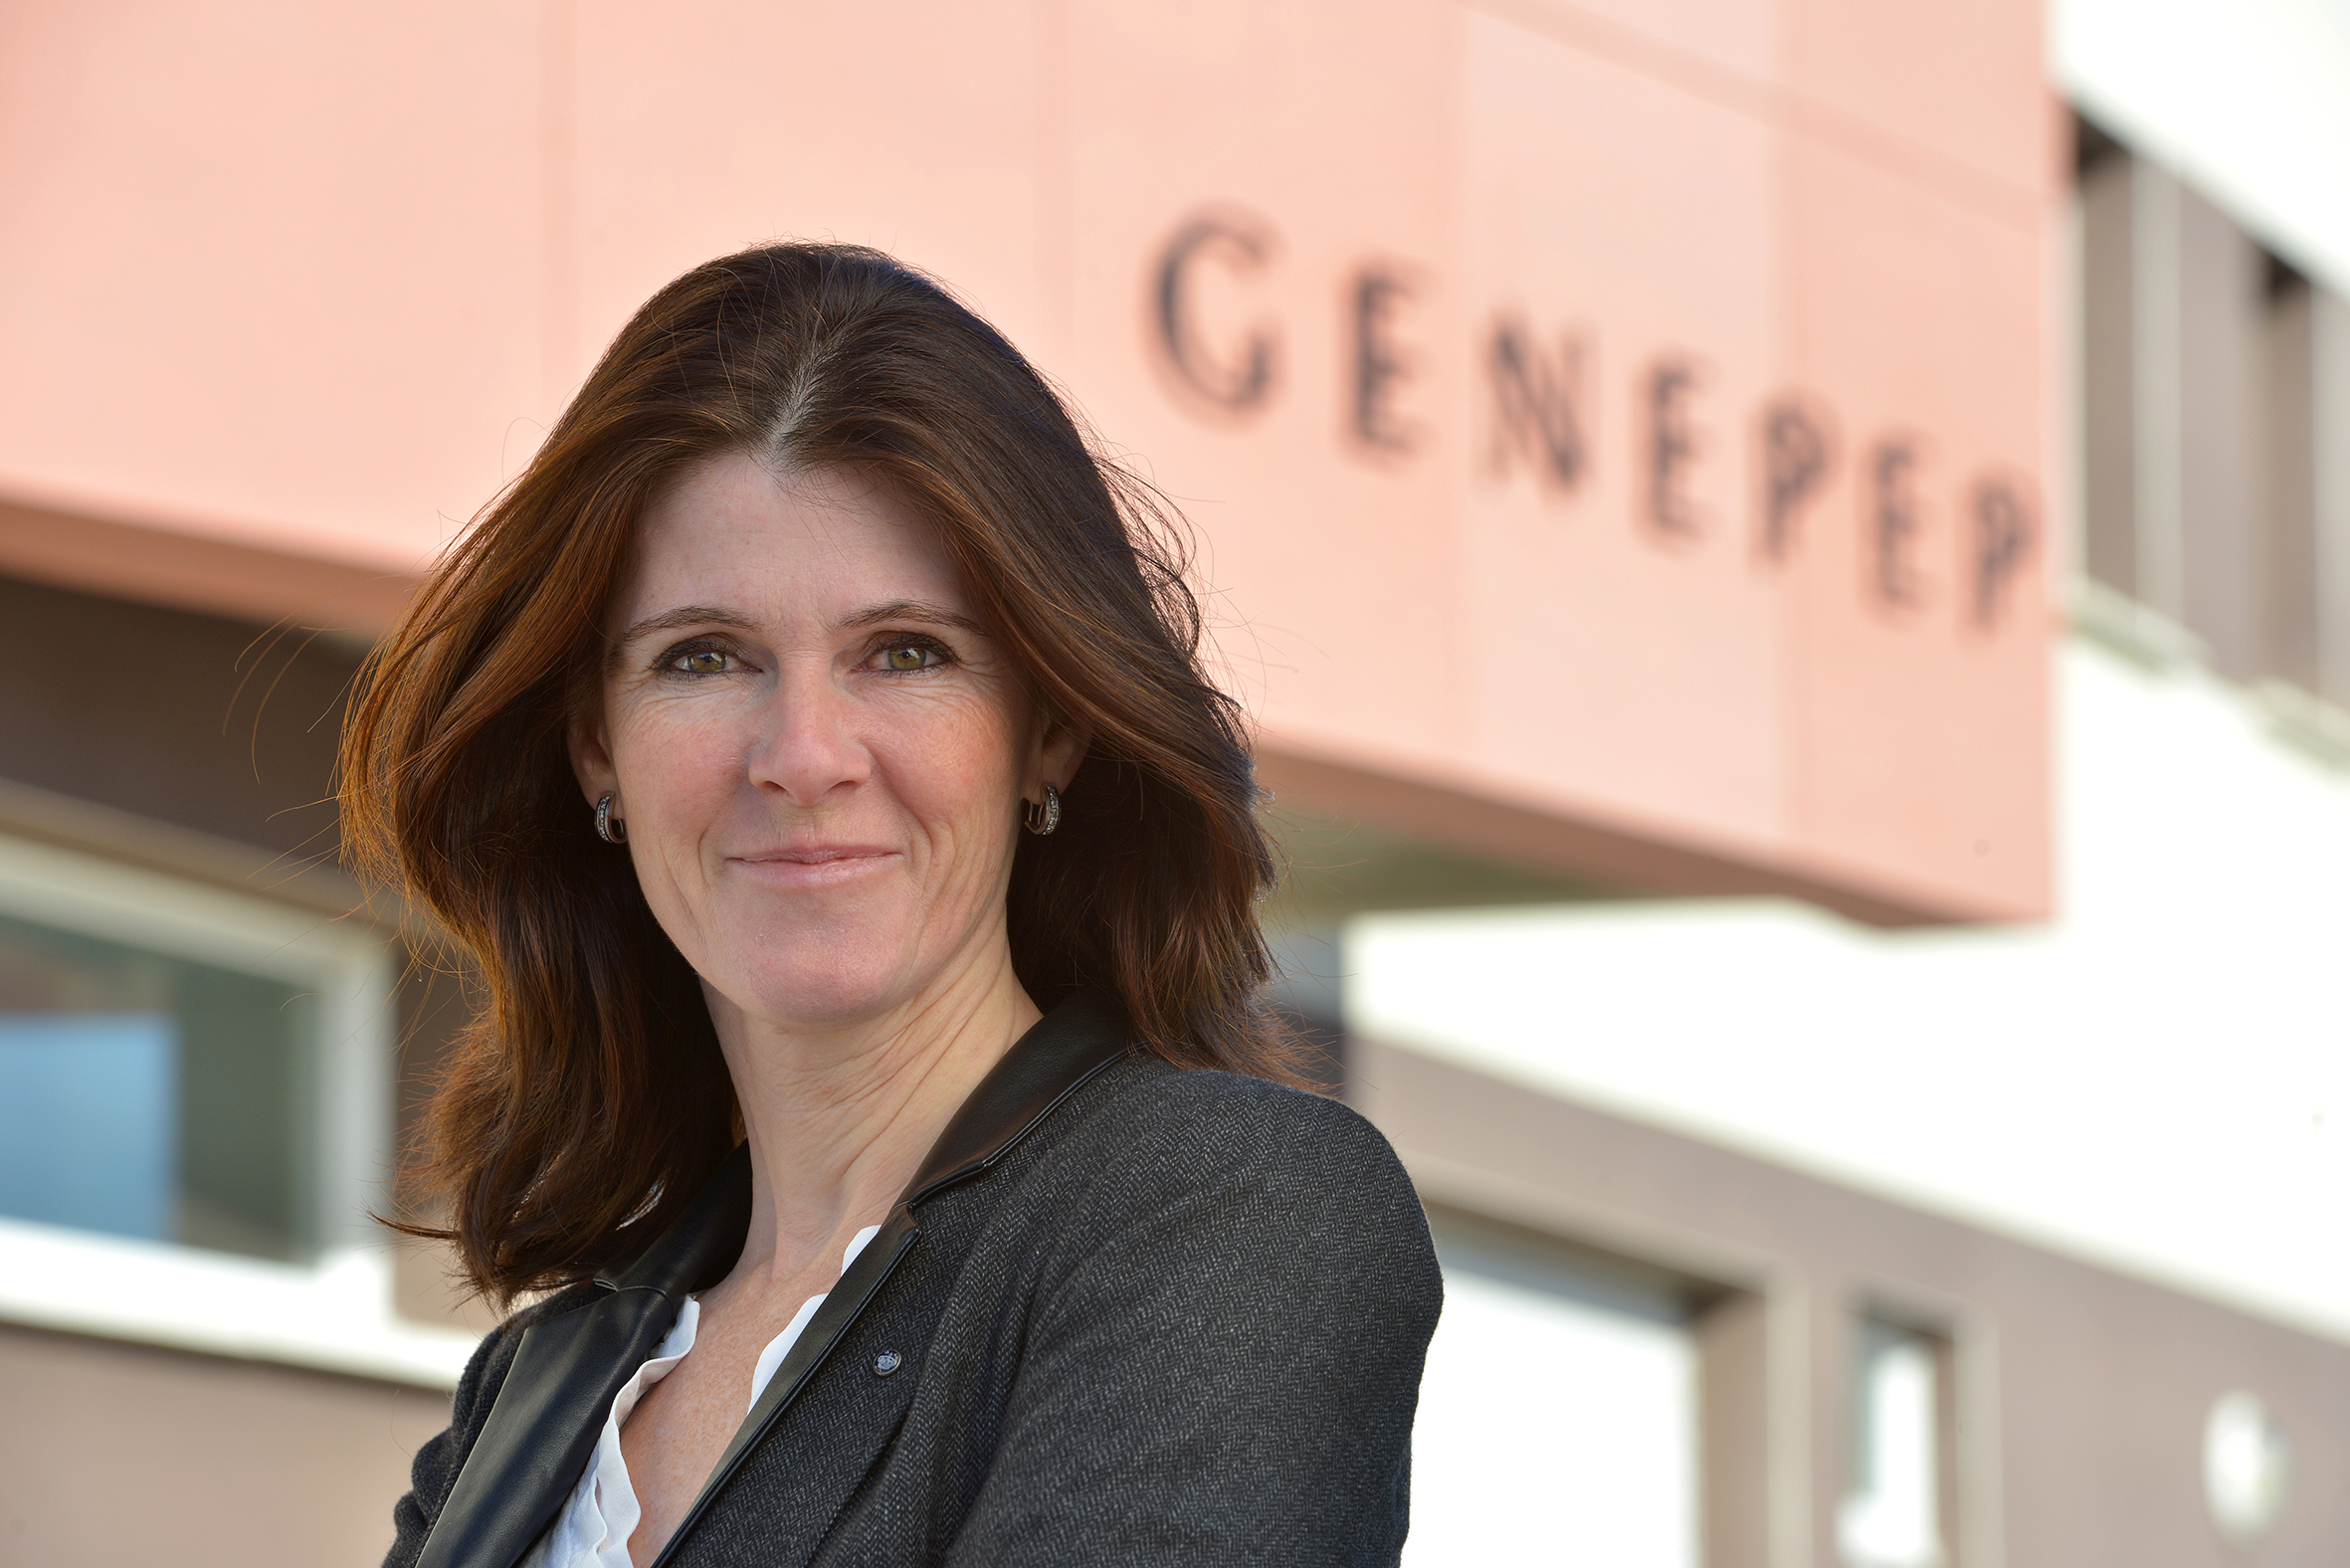 Karine Puget, CEO of Genepep